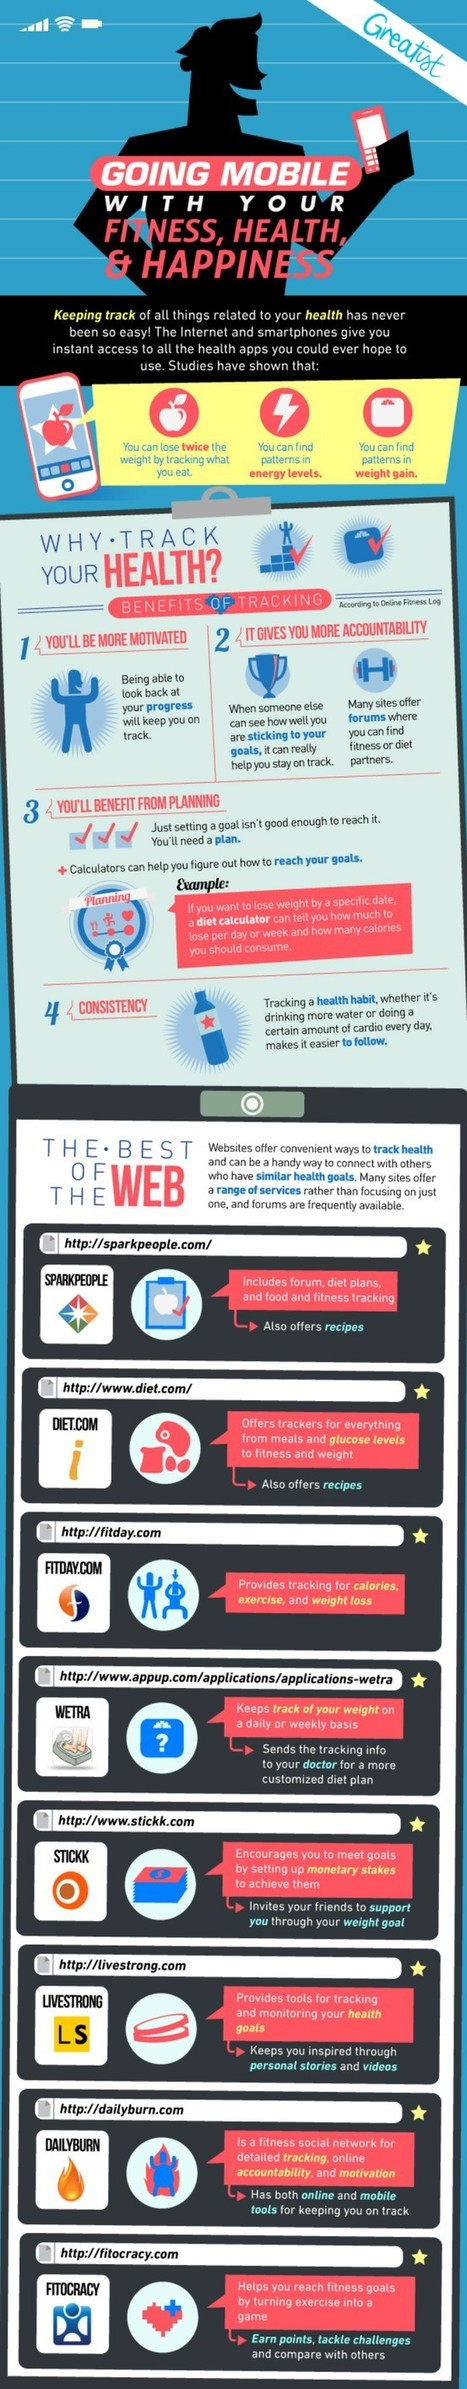 Mhealth : How to Track Health & Fitness Online on Mobile | All Infographics | Health promotion. Social marketing | Scoop.it